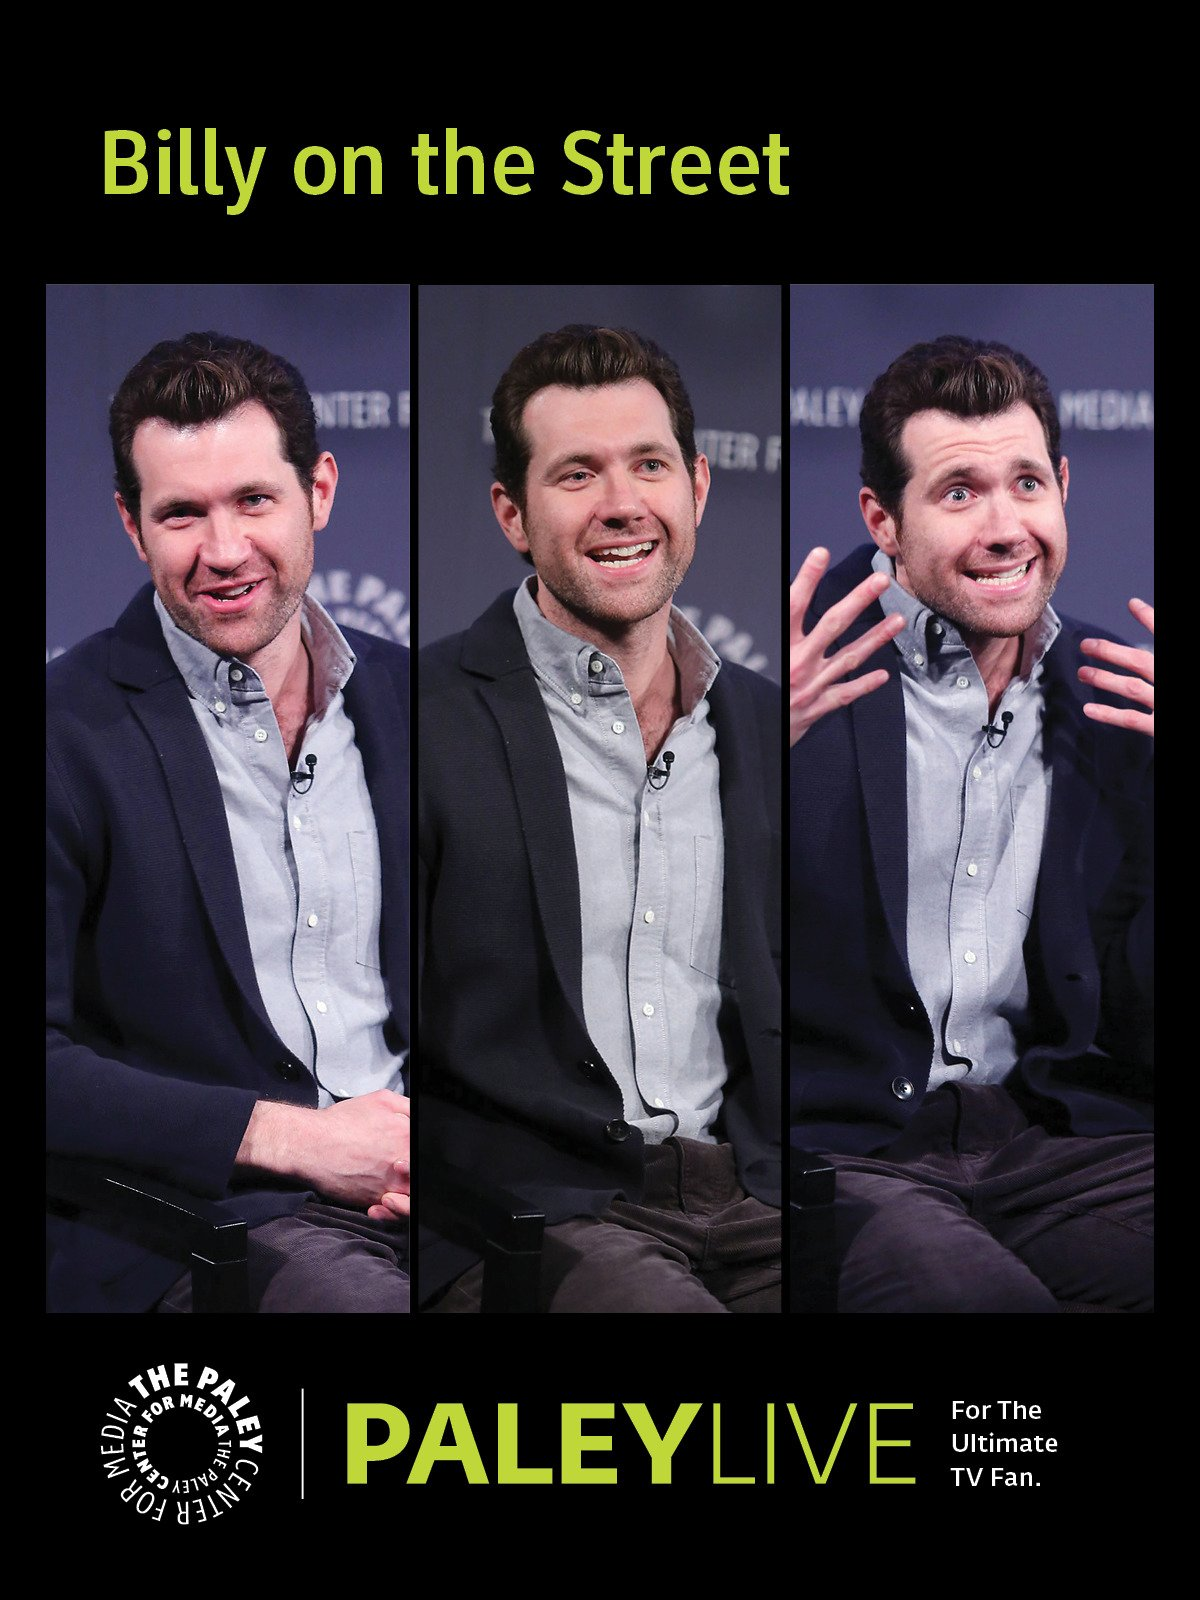 Billy on the Street: Billy Eichner at PaleyLive NY